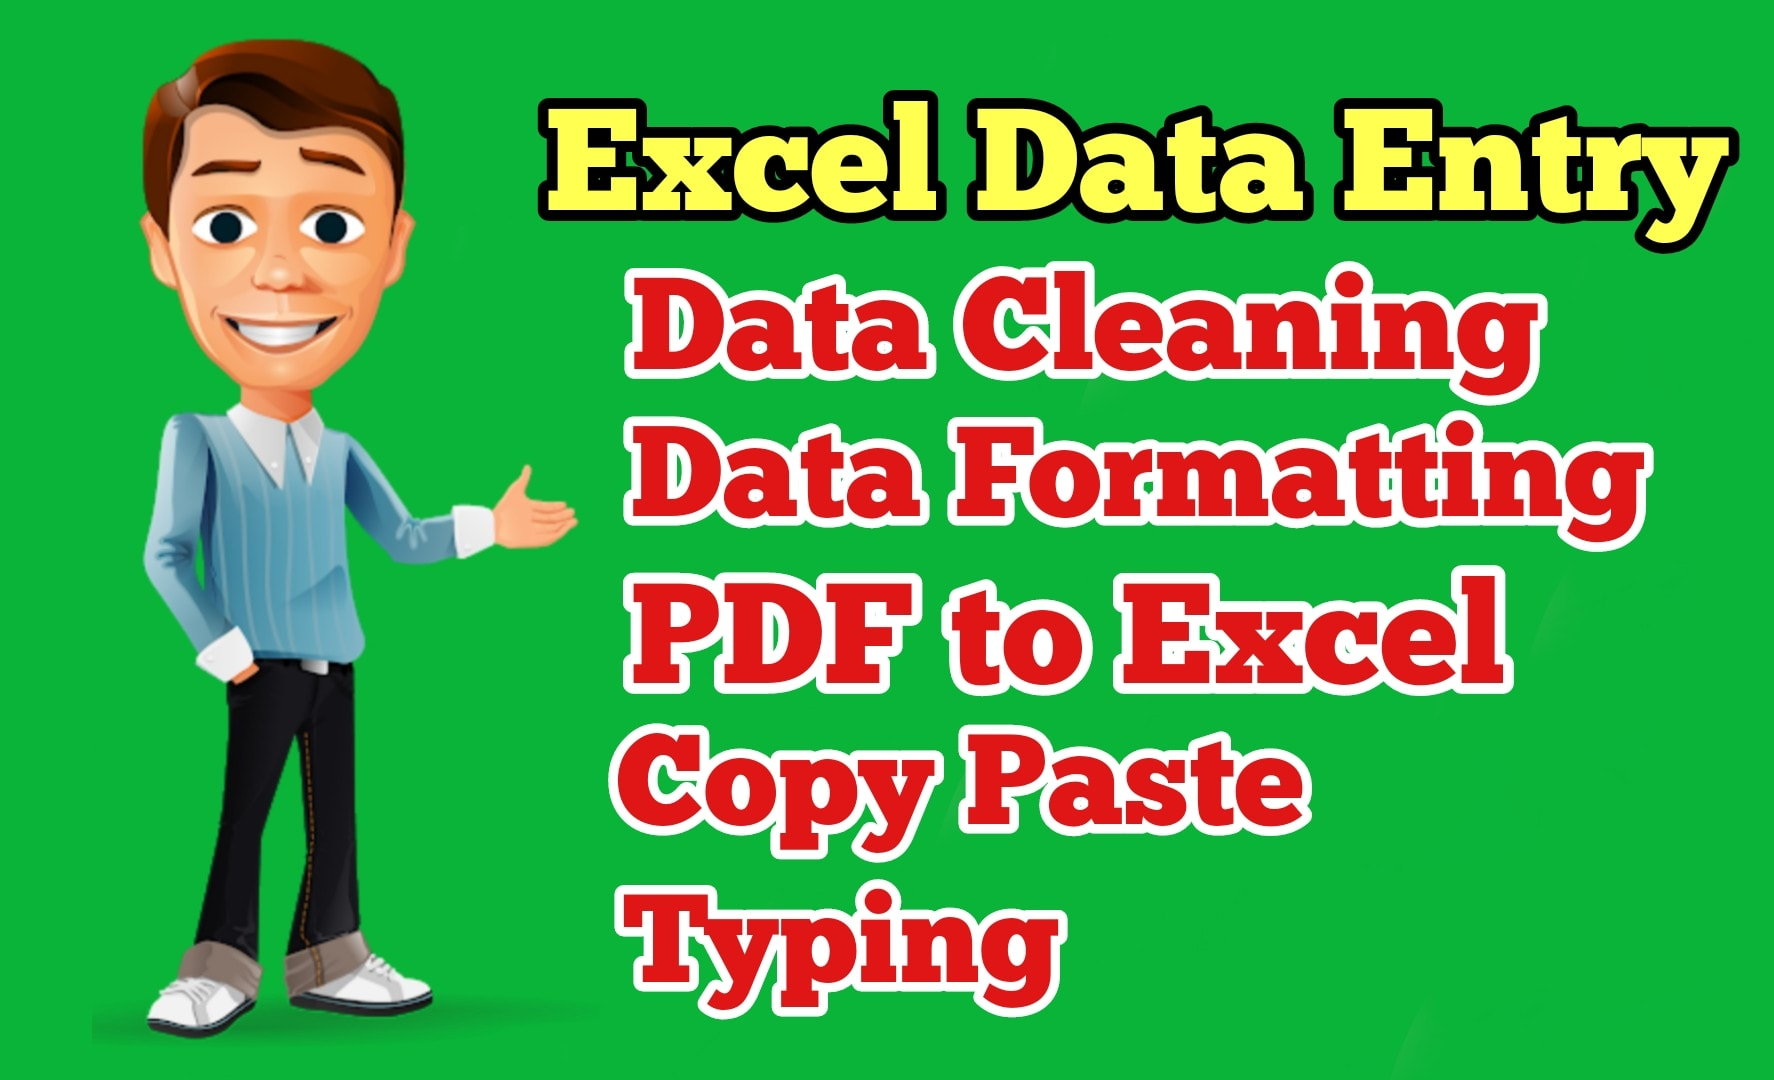 I will be your excel hero and do excel data entry, data merge, cleanup and formatting